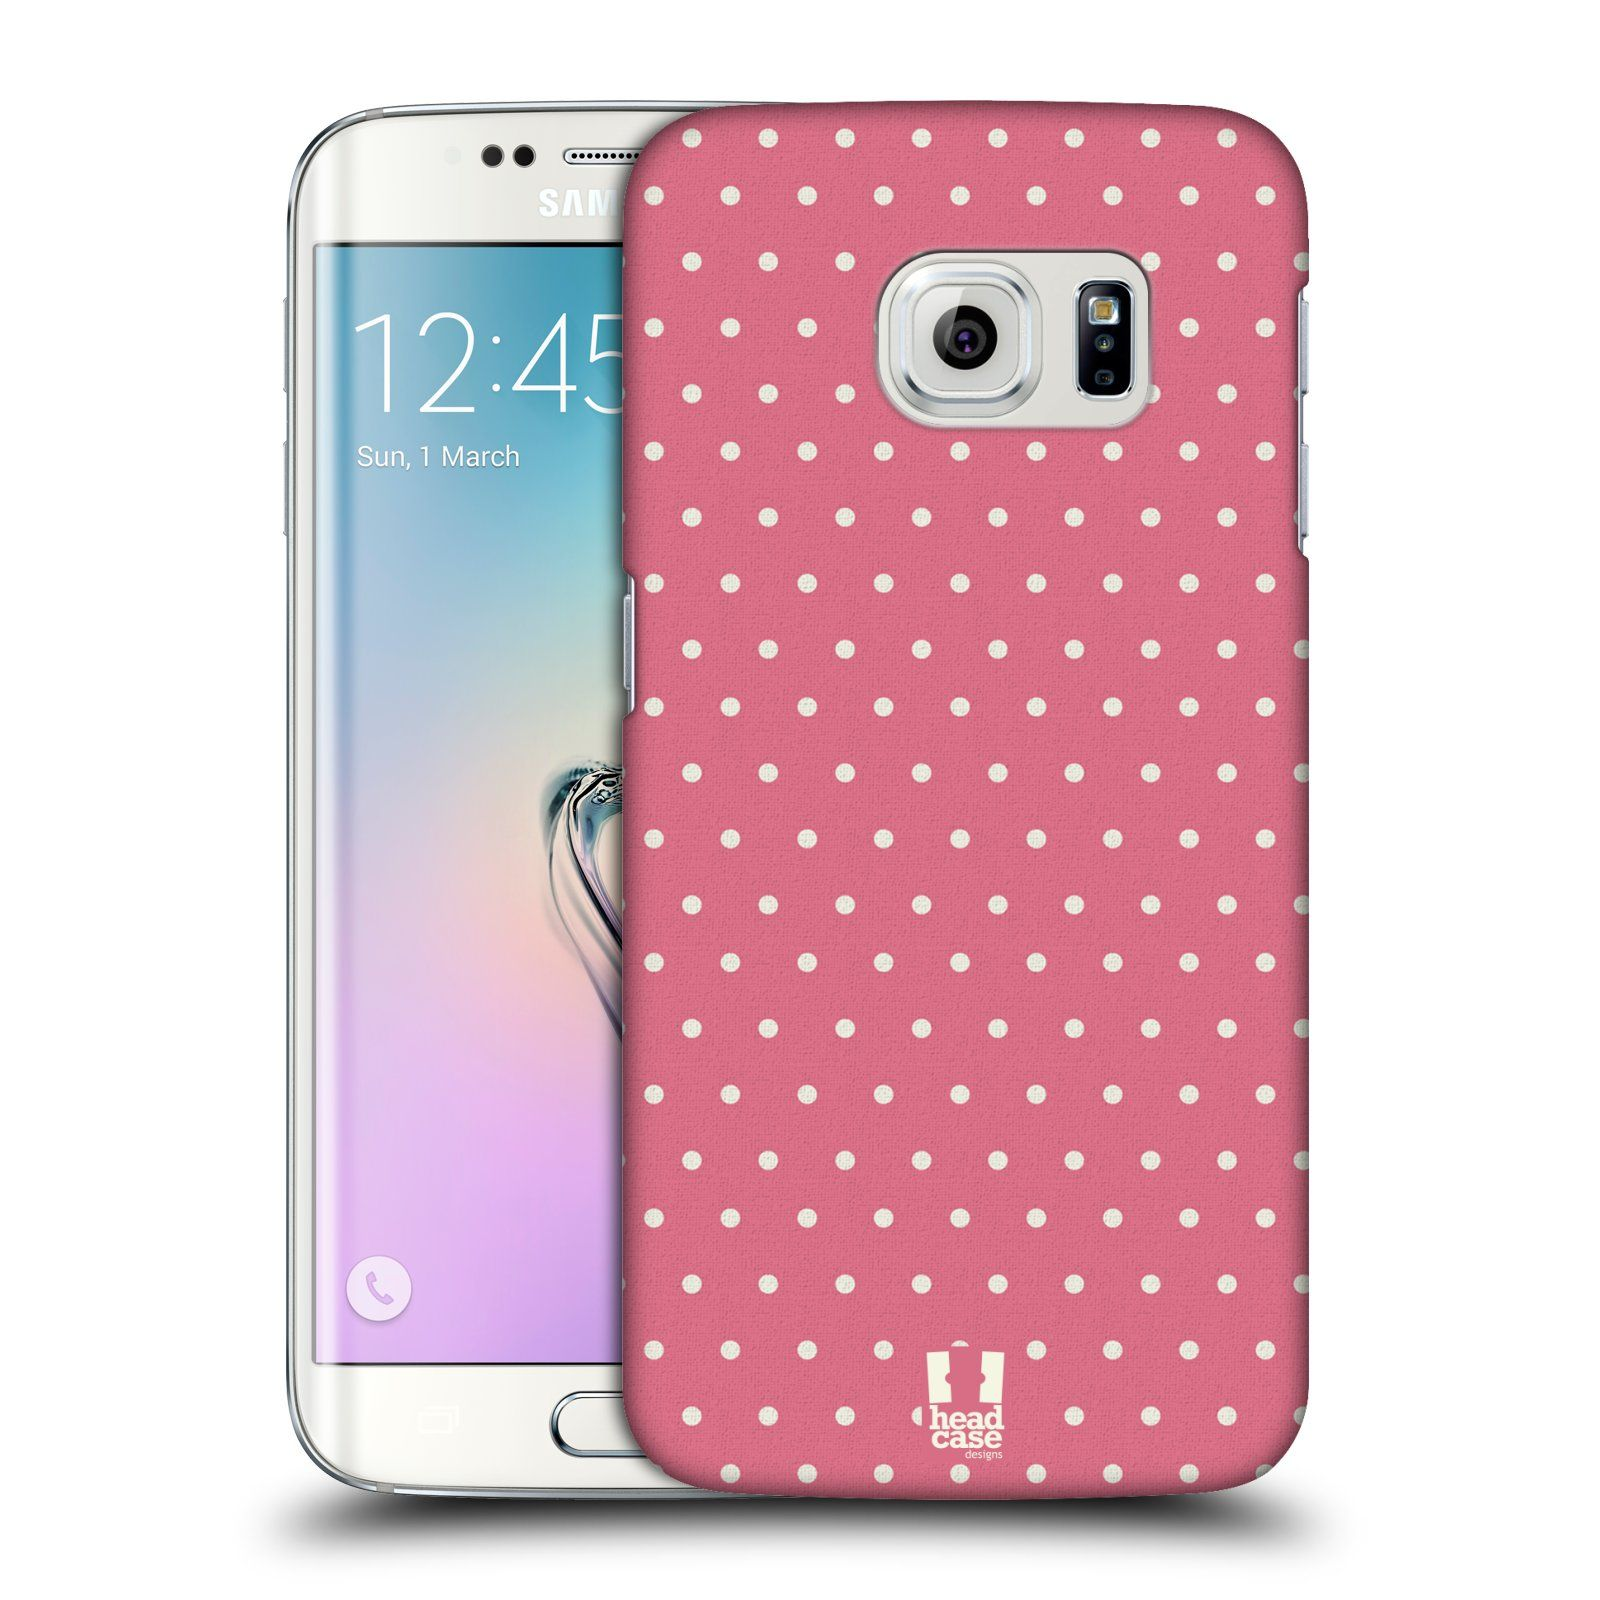 HEAD CASE DESIGNS FRENCH COUNTRY PATTERNS CASE FOR SAMSUNG GALAXY S6 EDGE G925